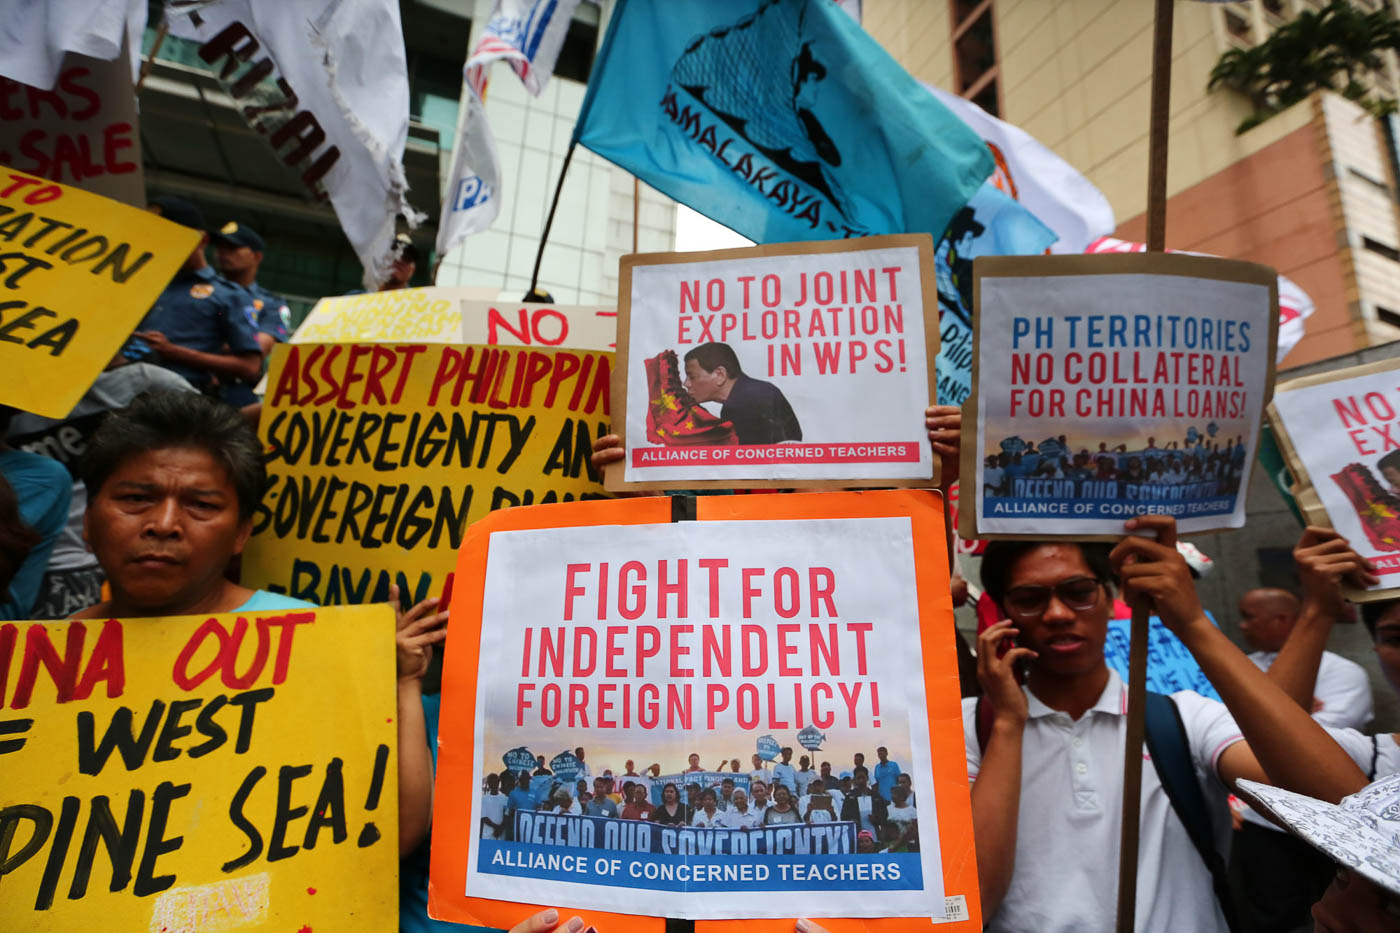 INDEPENDENCE. Signs fighting for independent foreign policy can be seen in a protest at the Chinese Consulate during Xi Jinping's PH state visit on Tuesday, November 20. Photo by Jire Carreon/Rappler